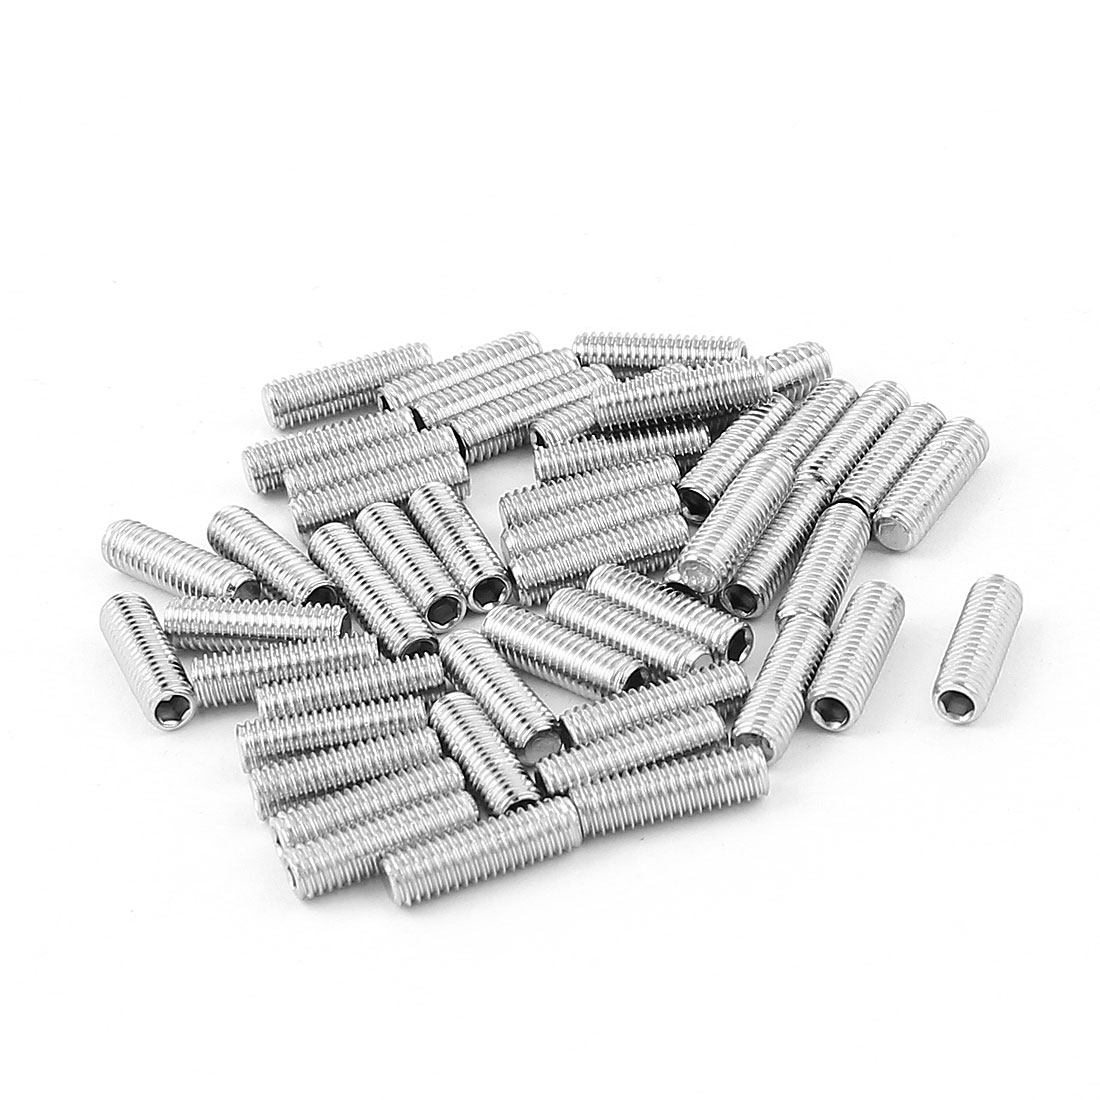 50pcs 304 Stainless Steel M5 5mm Flat Point Hex Socket Grub Screws